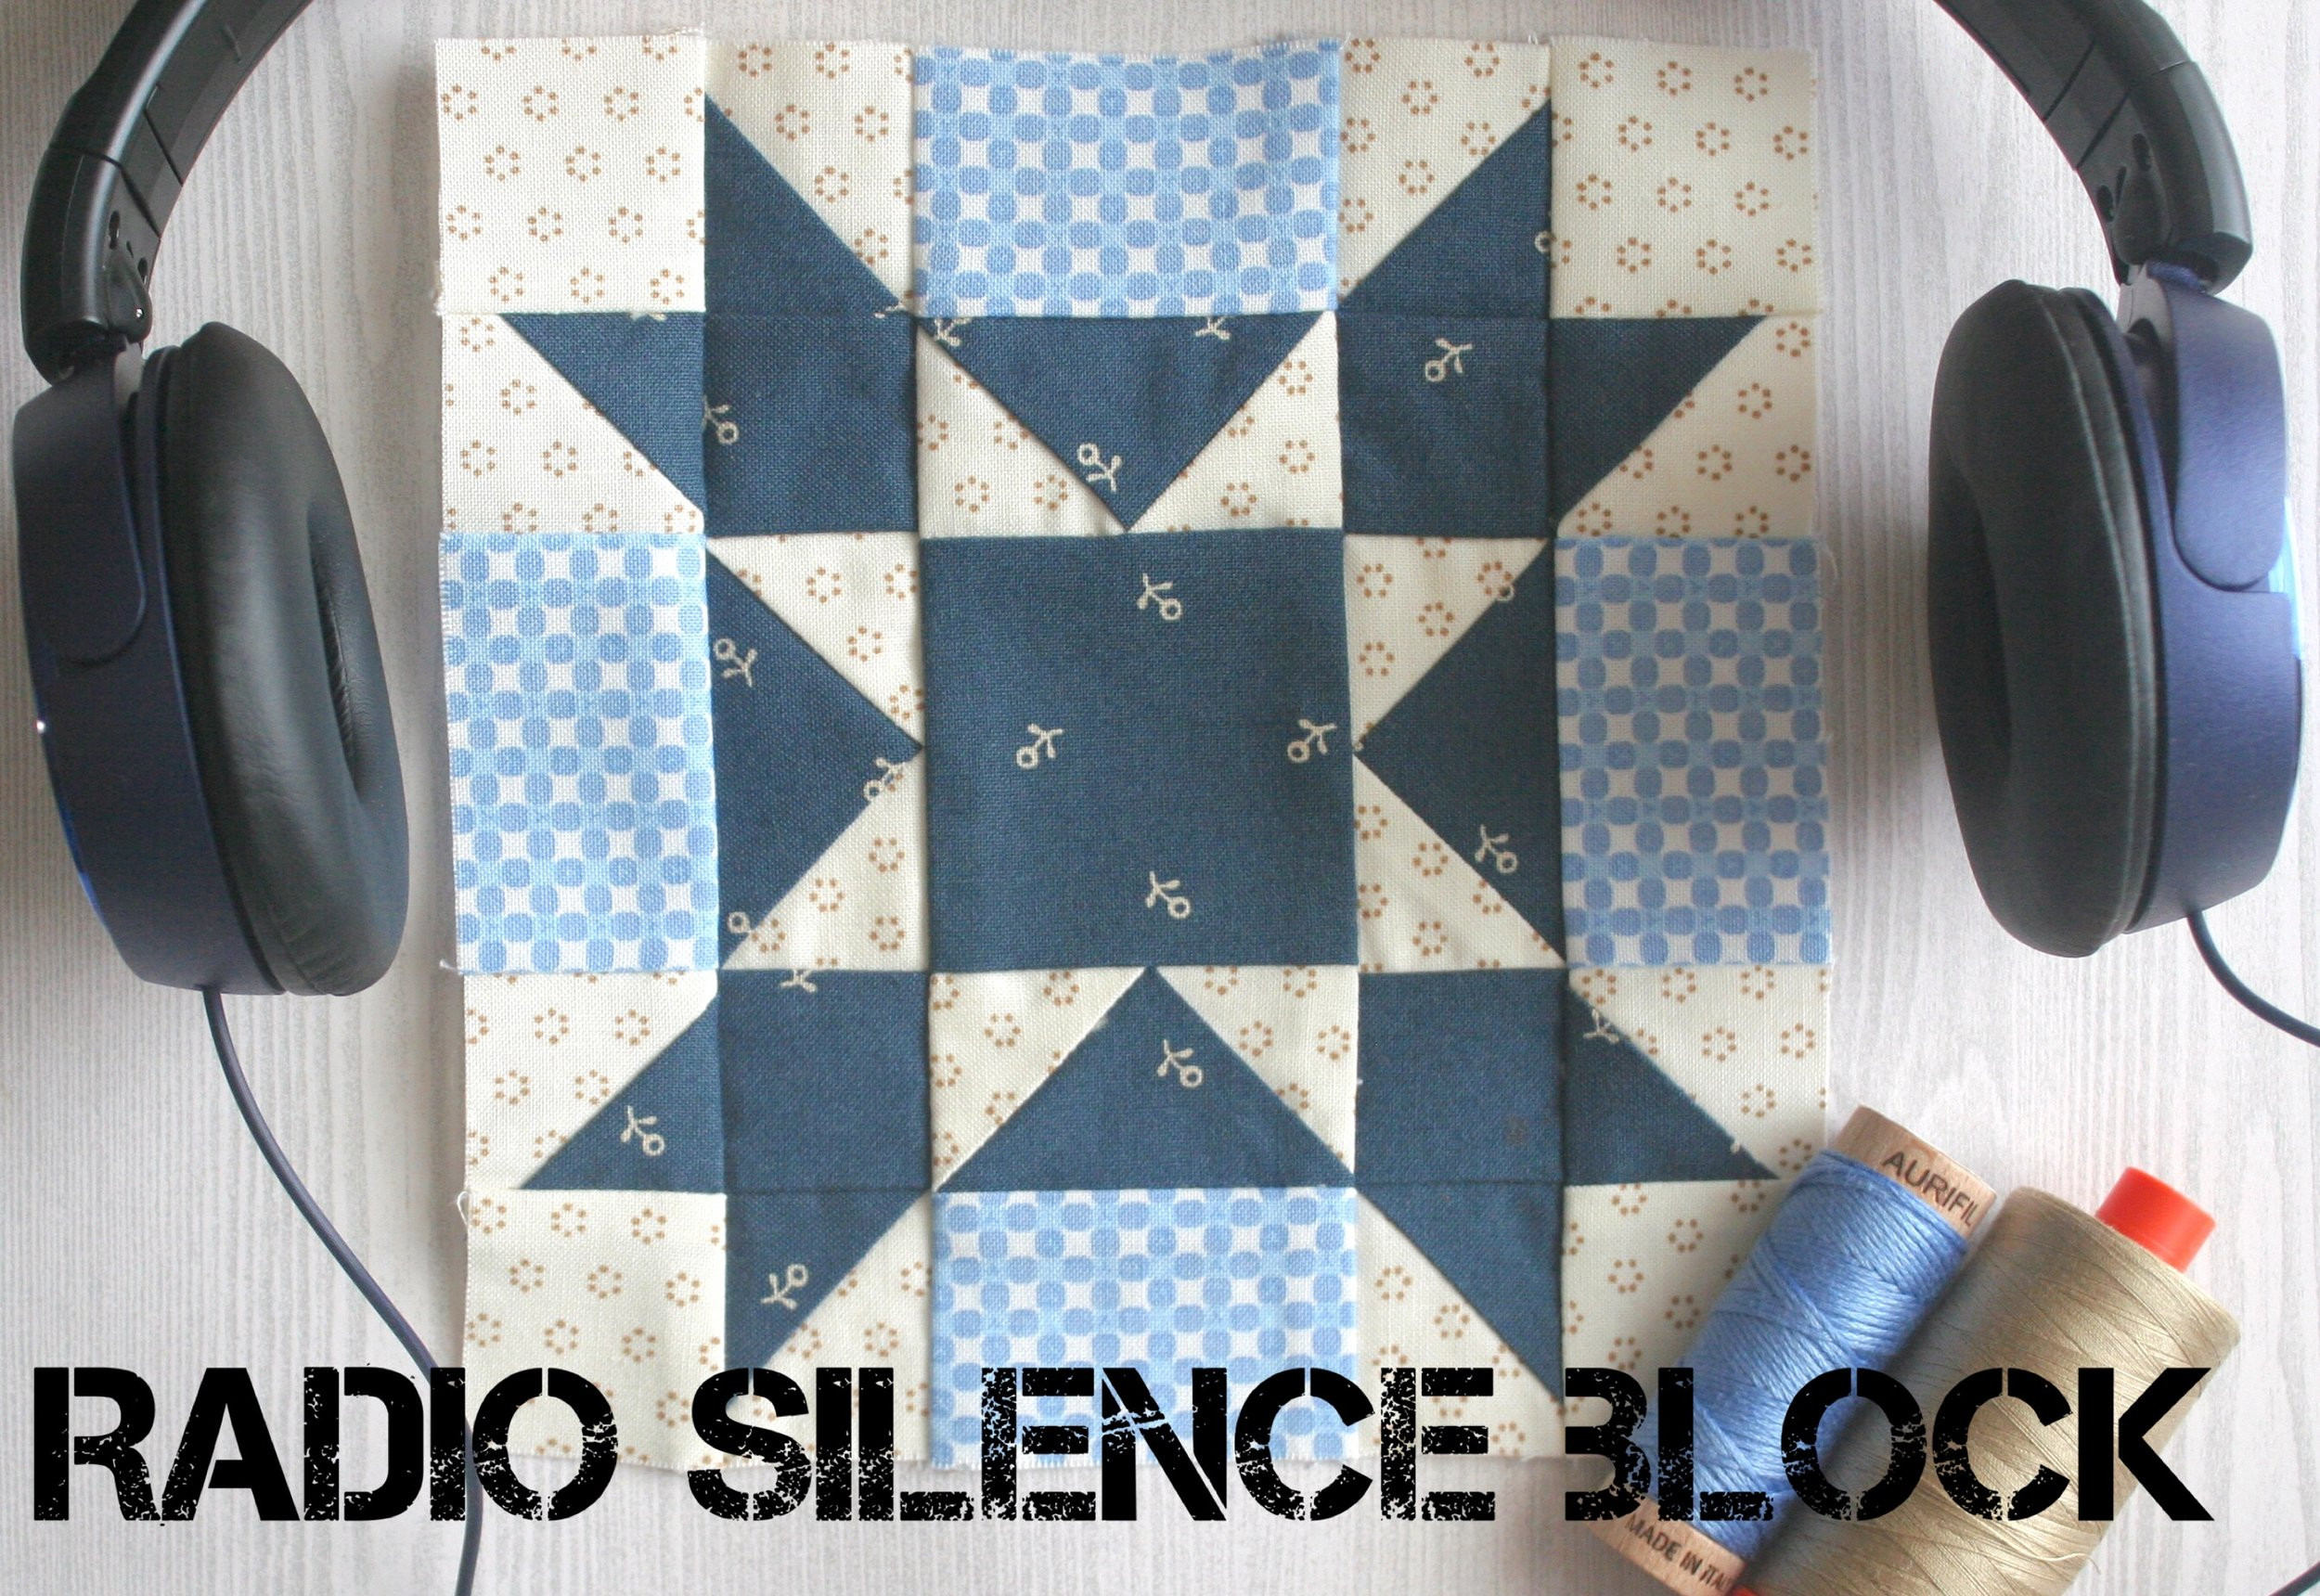 The Splendid Sampler 2: Radio Silence Block page 27.